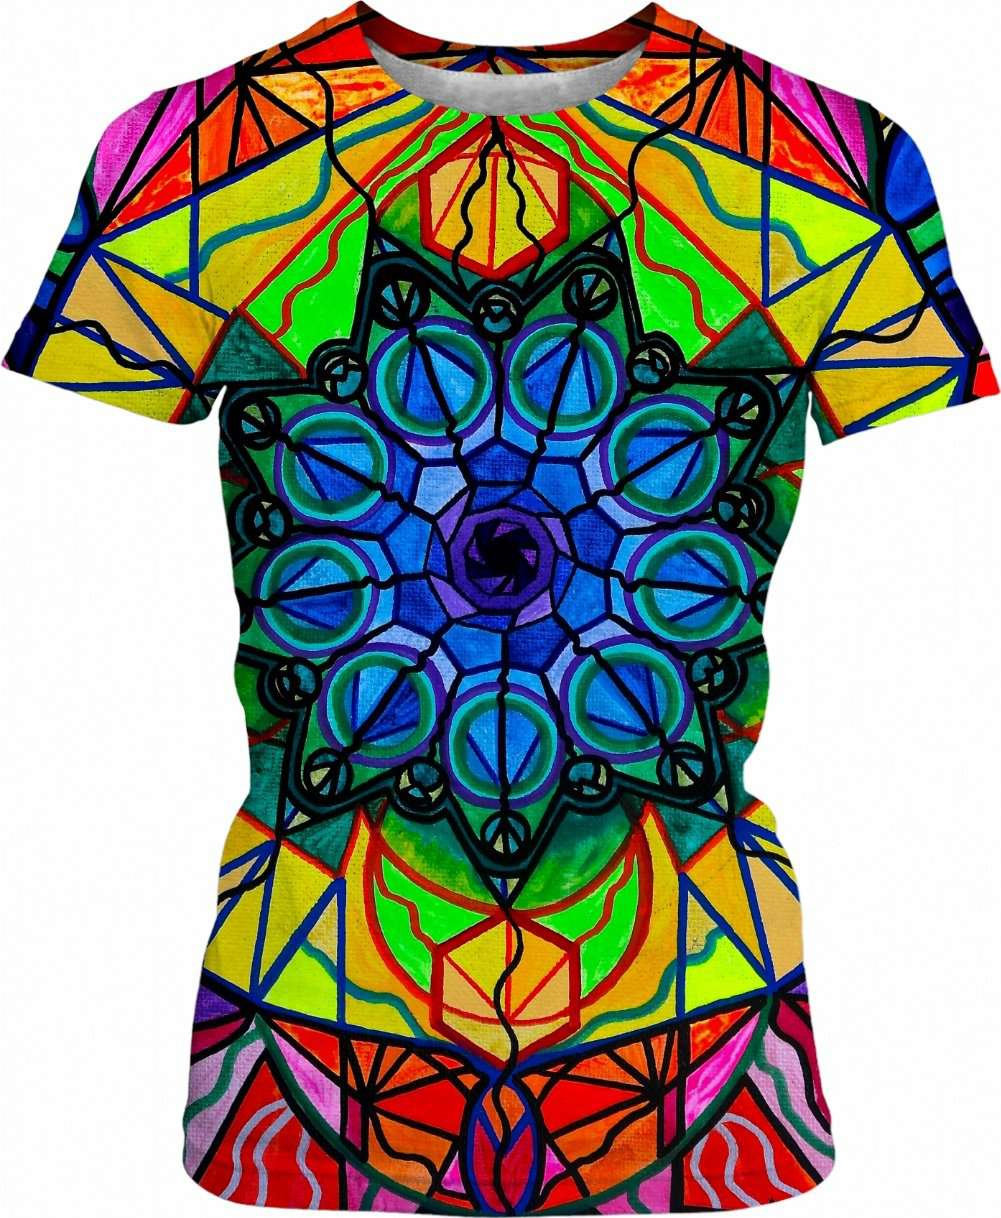 Creativity - Women's T-Shirt